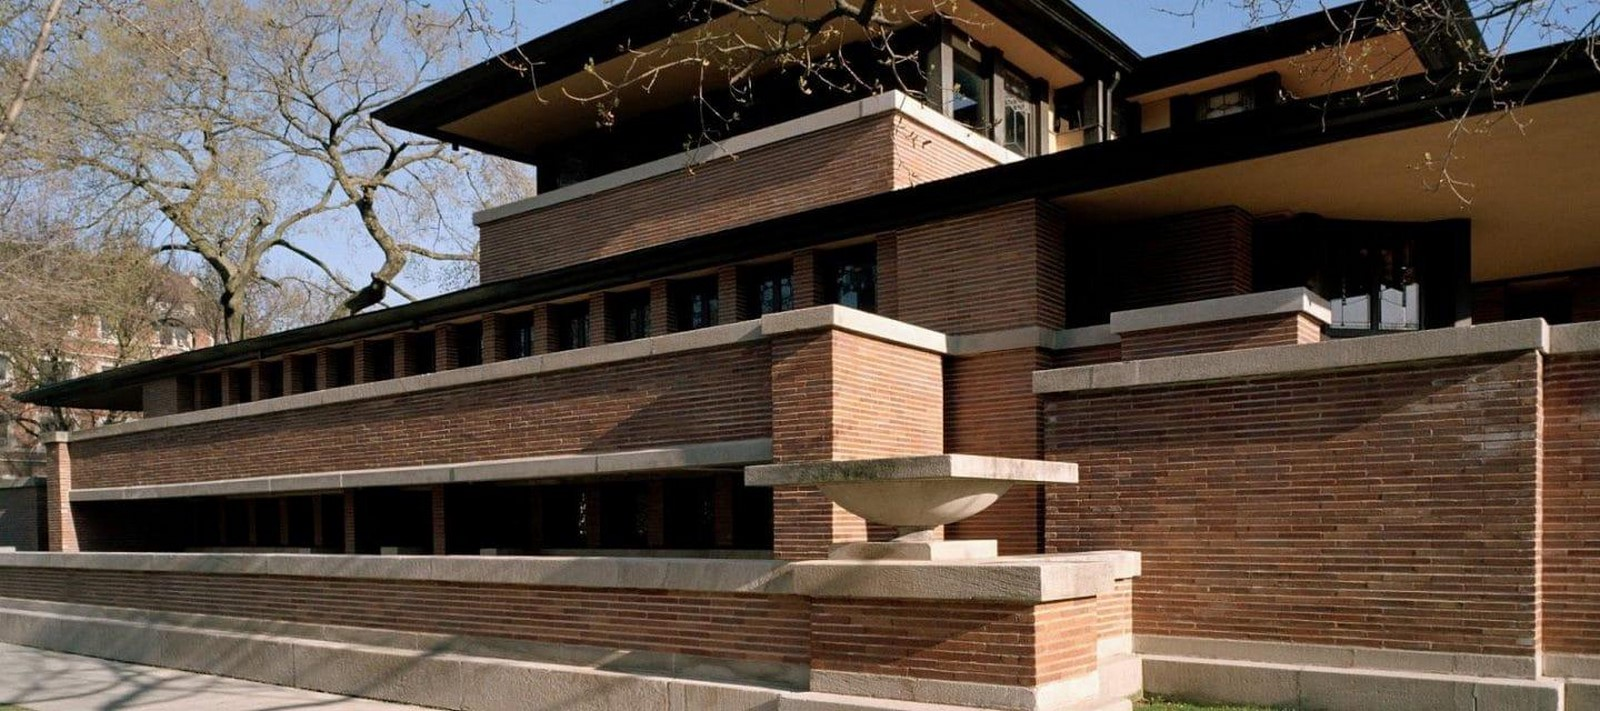 Frederick C. Robie House by Frank Lloyd Wright: Prairie style of architecture - Sheet2